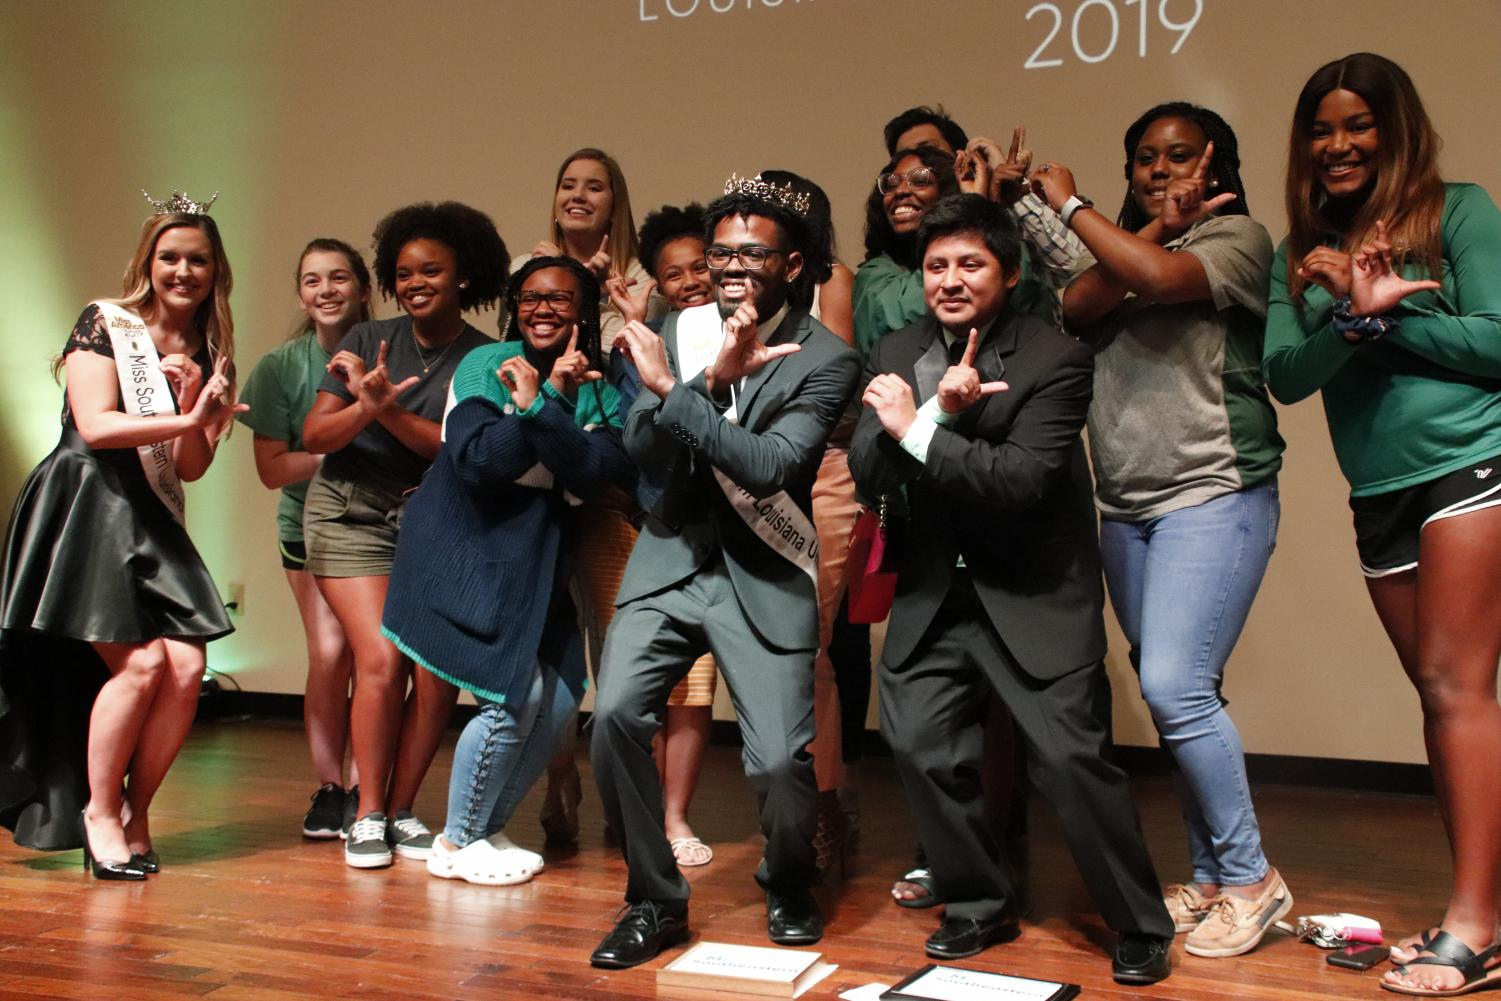 """Brian Williams, a senior communication major, poses for a picture with Miss Southeastern Louisiana University 2019 Chelsey Blank and orientation leaders after winning the competition. Williams played musical instruments for his talent competition, and won the """"Best Hair Award."""""""